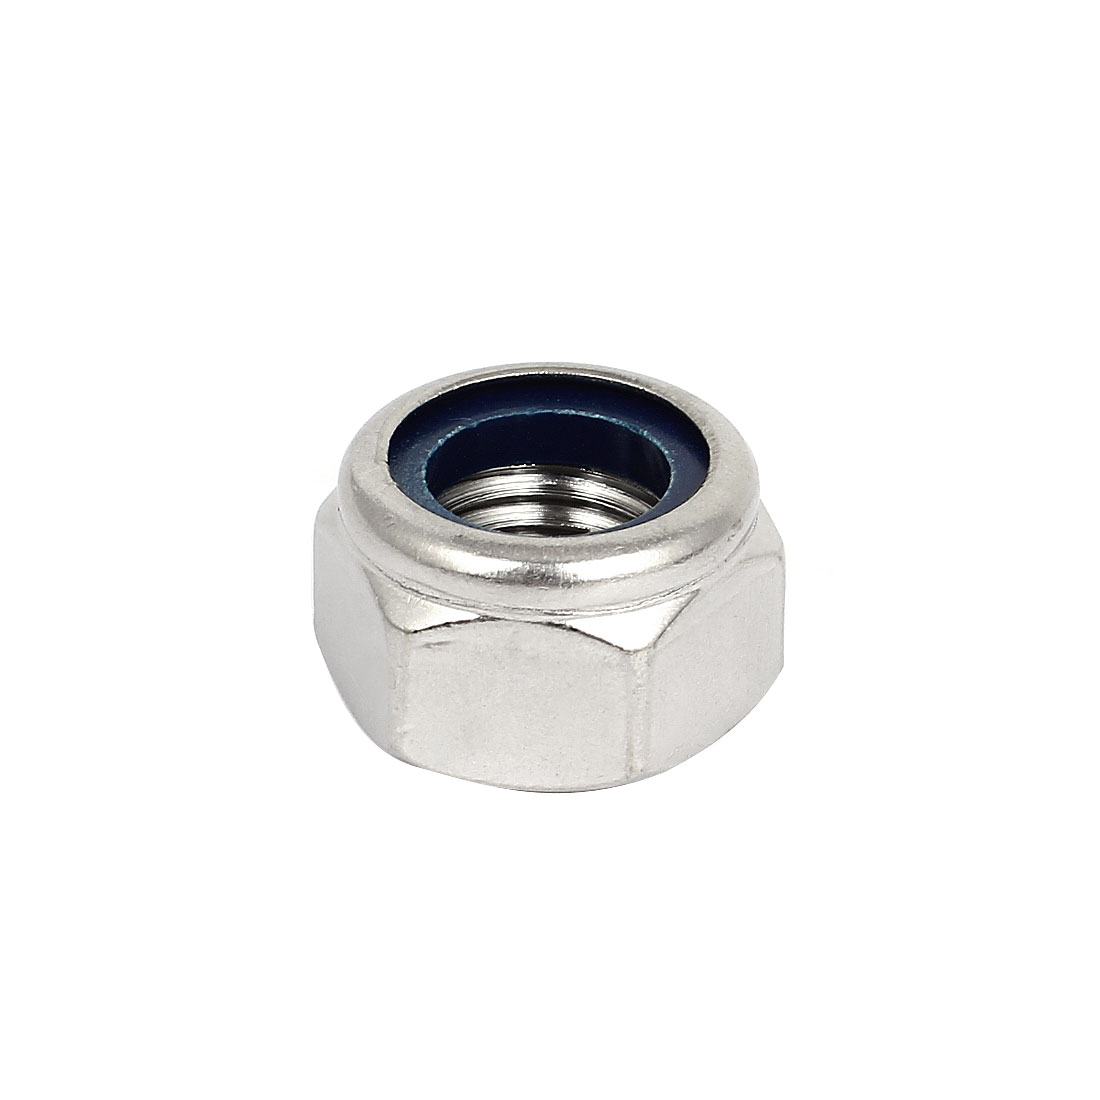 M20 x 2.5mm 304 Stainless Steel Nylock Self-Locking Nylon Insert Hex Lock Nut